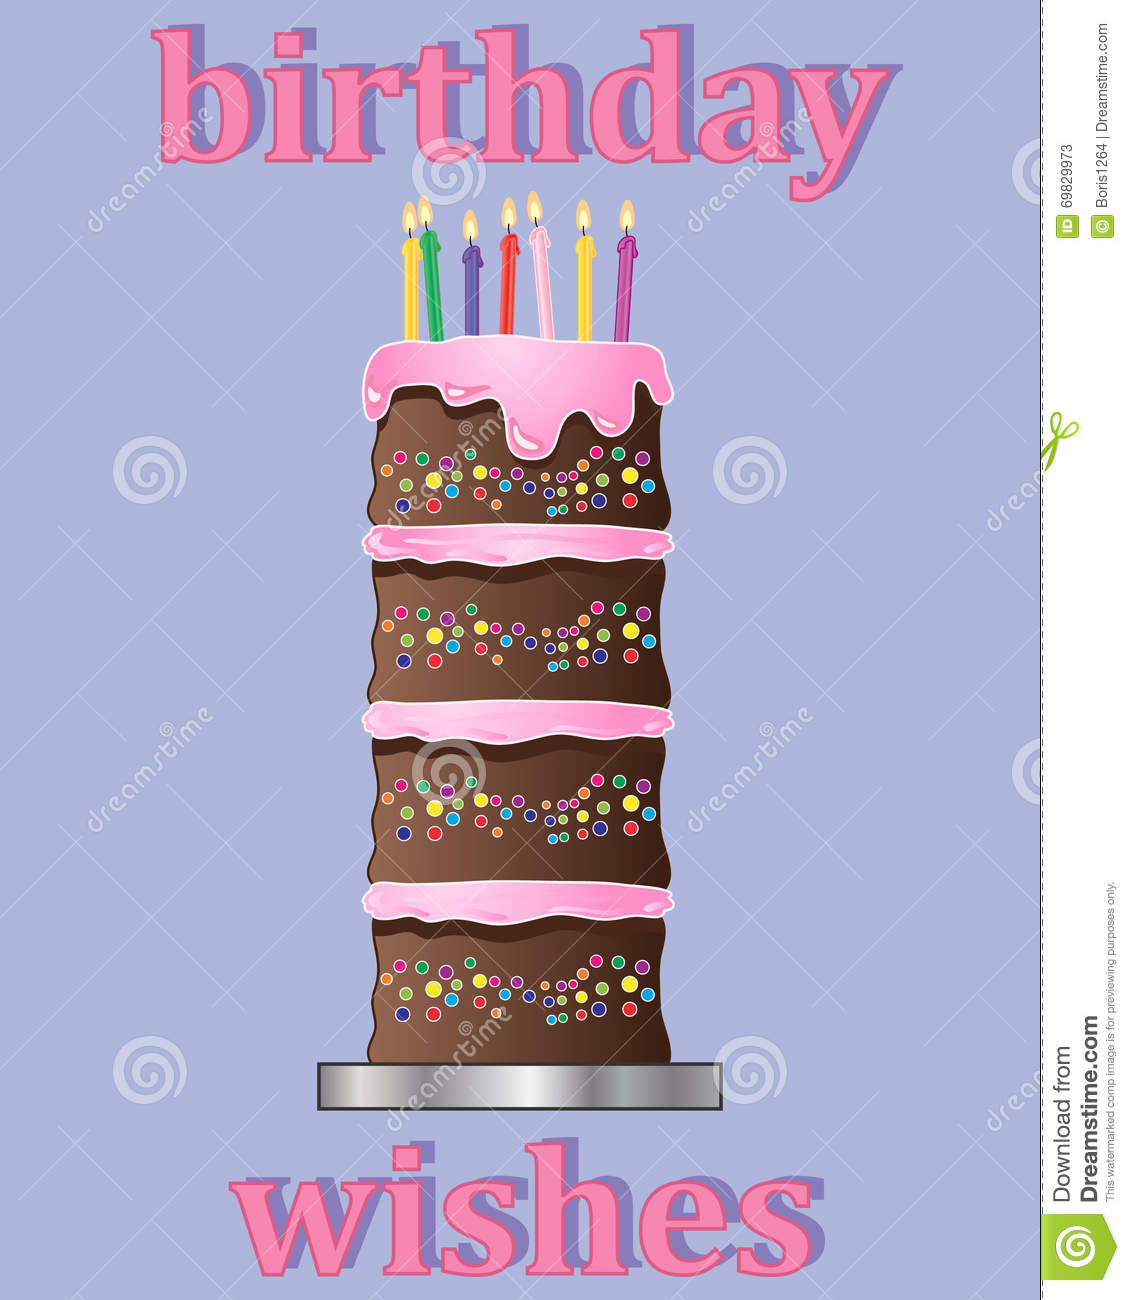 An Illustration Of A Birthday Greeting Card Design With Multi Layered Chocolate Cake Decorated Pink Frosting And Colorful Candles